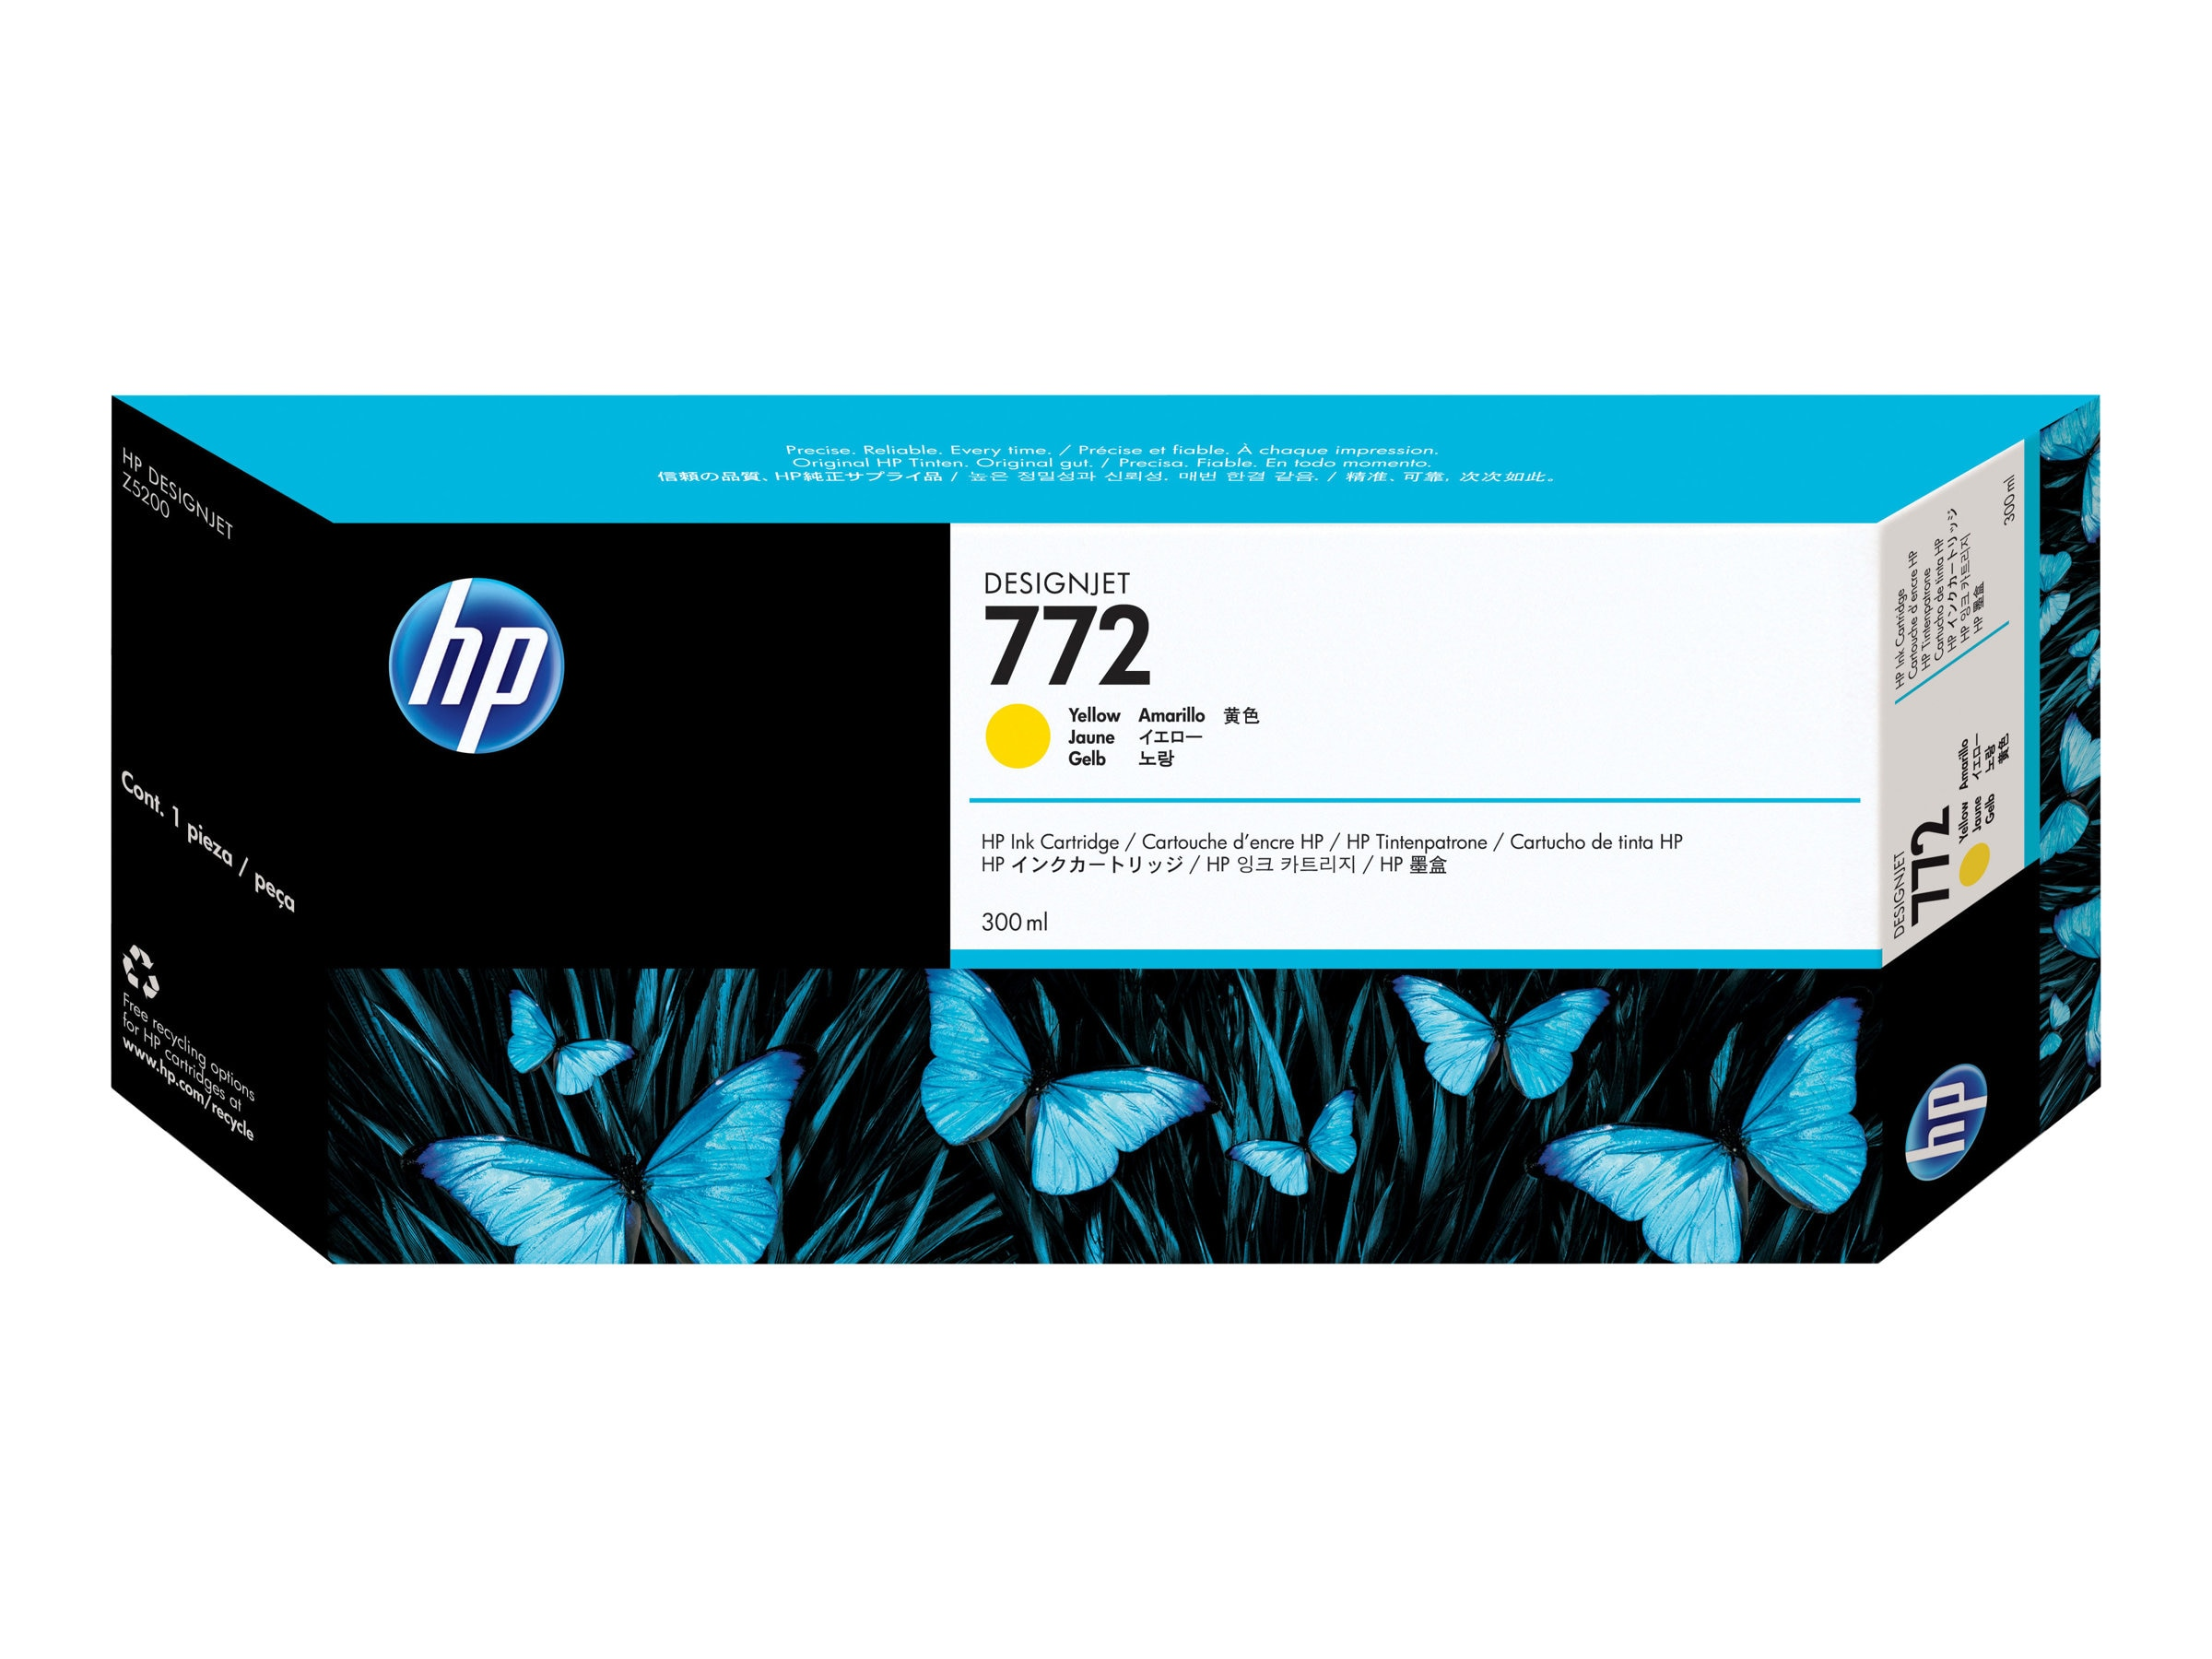 HP 772 Yellow 300ml Ink Cartridge, CN630A